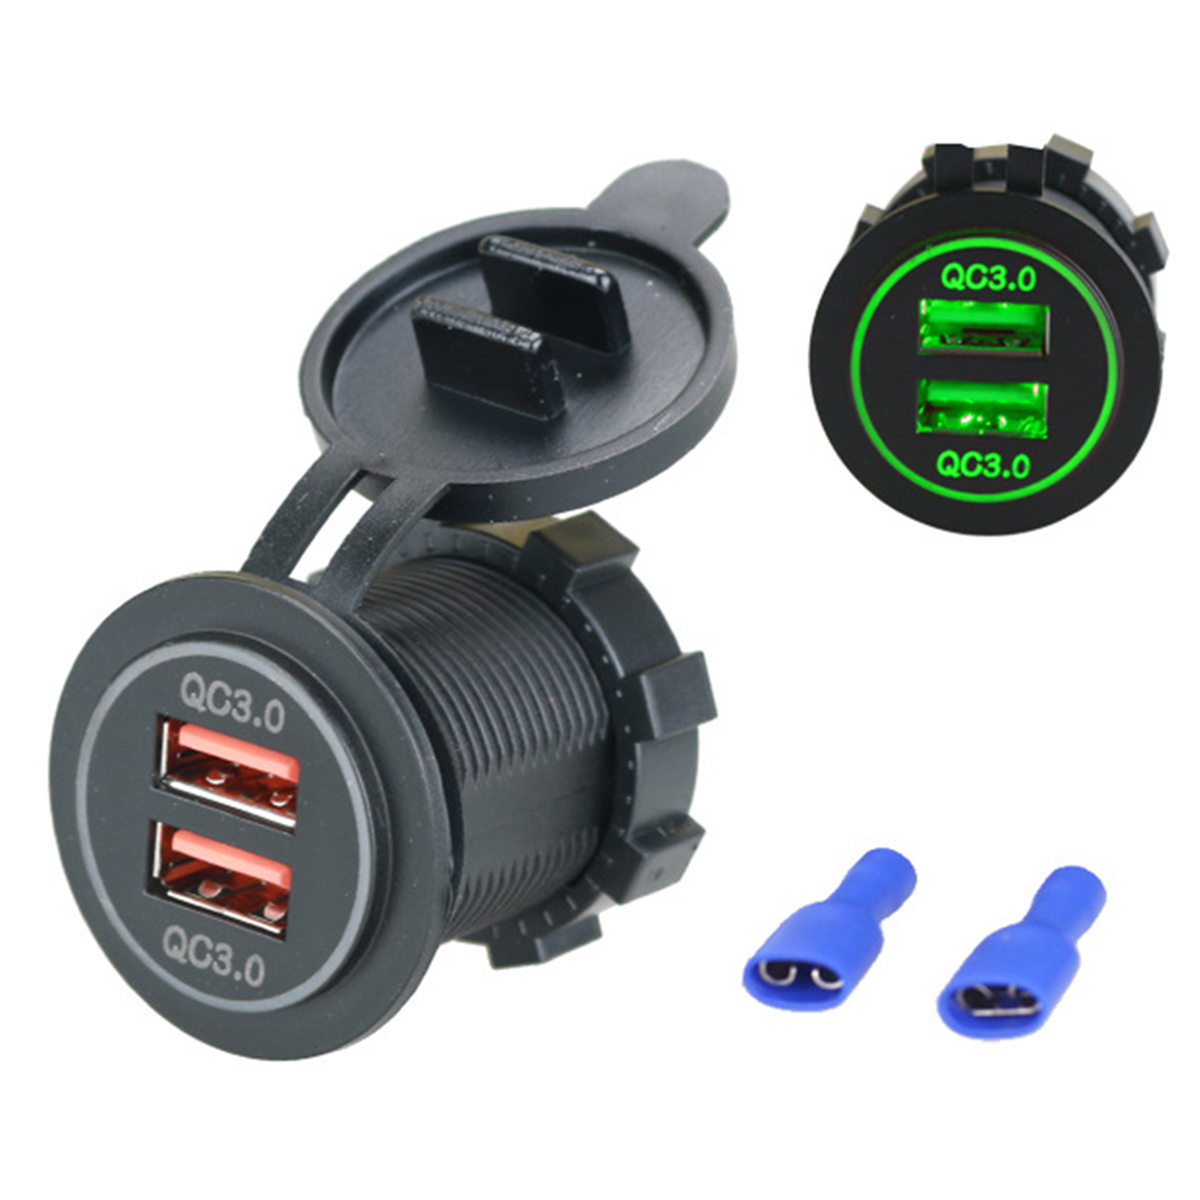 12V 24V Motorcycles Mini Dual USB QC 3.0 Smart Car Charger Fast Charge Red/Green/Blue LED Light Fit For Cellphone Tablet Car DVR